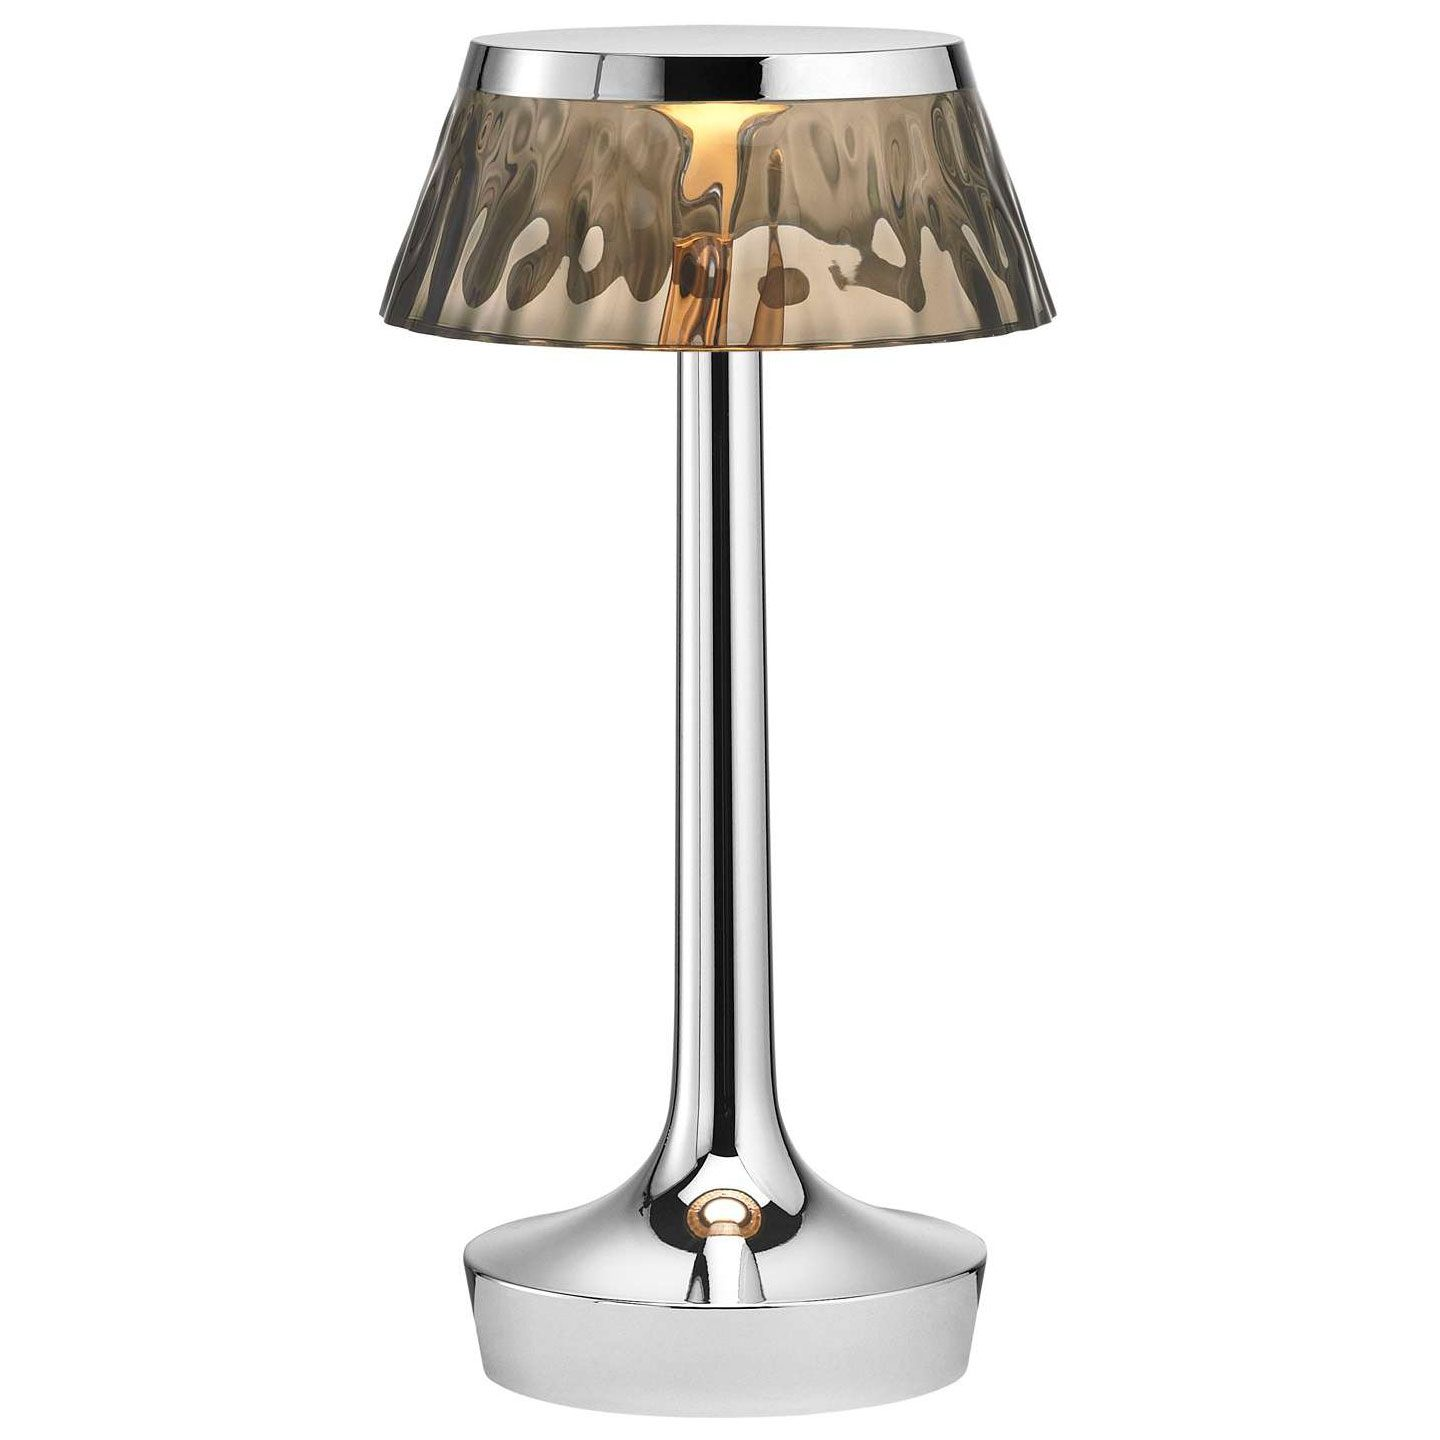 Photo of Bon Jour Unplugged Table Lamp by Flos Lighting | F1035057FM